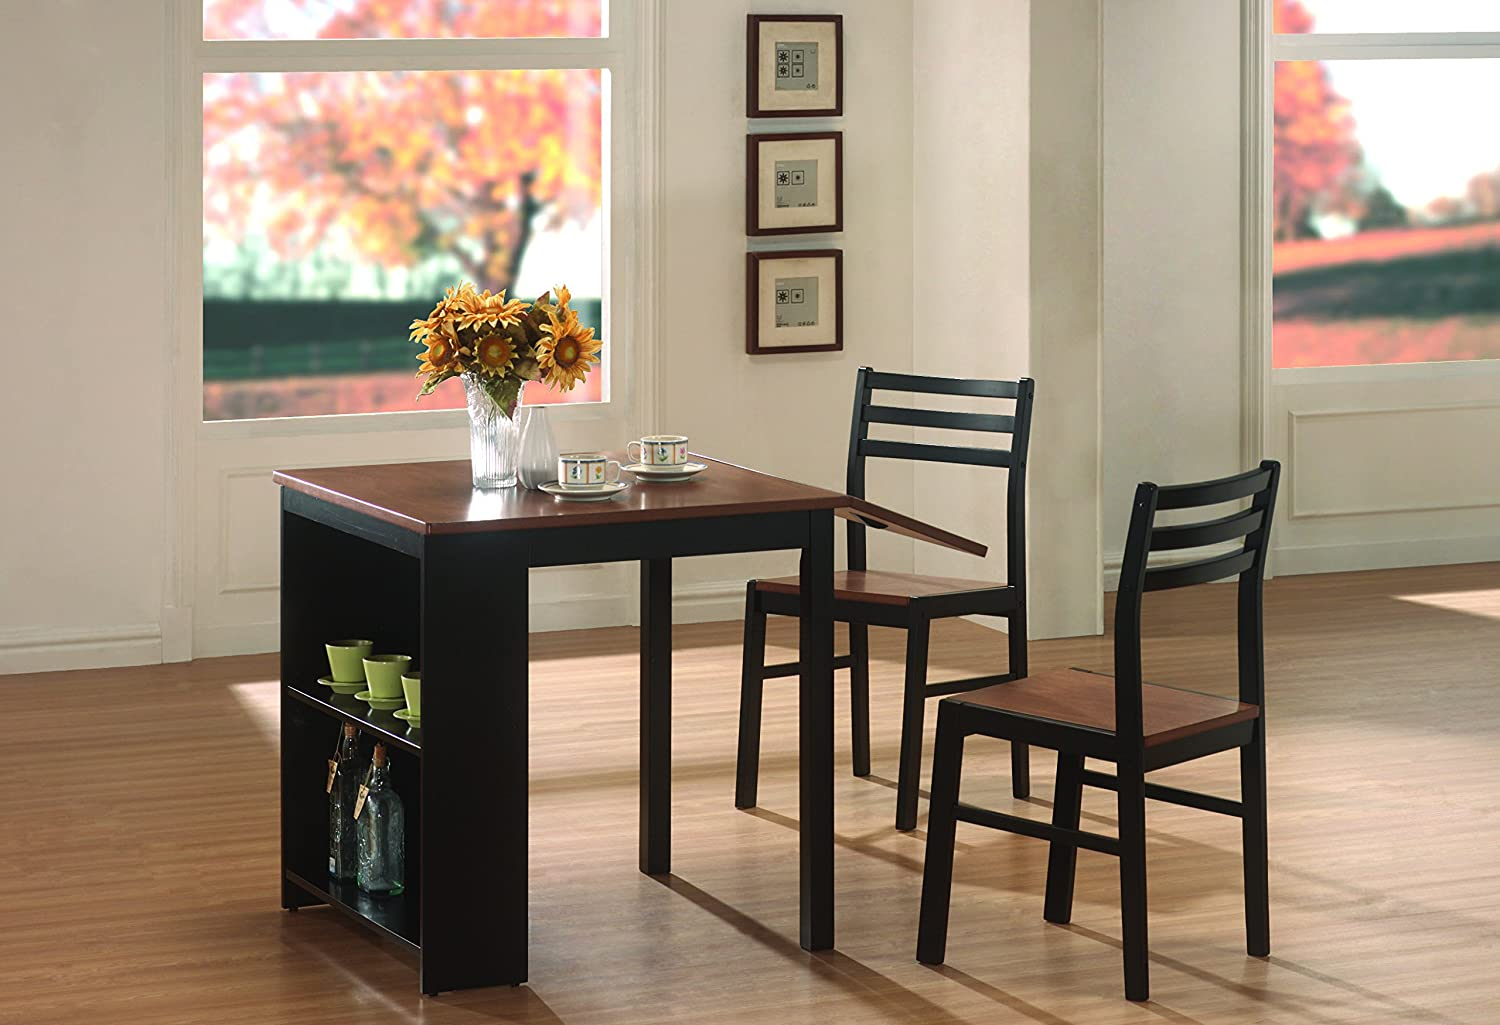 amazon com coaster home furnishings 130015 casual dining room 3 amazon com coaster home furnishings 130015 casual dining room 3 piece set walnut and black table chair sets